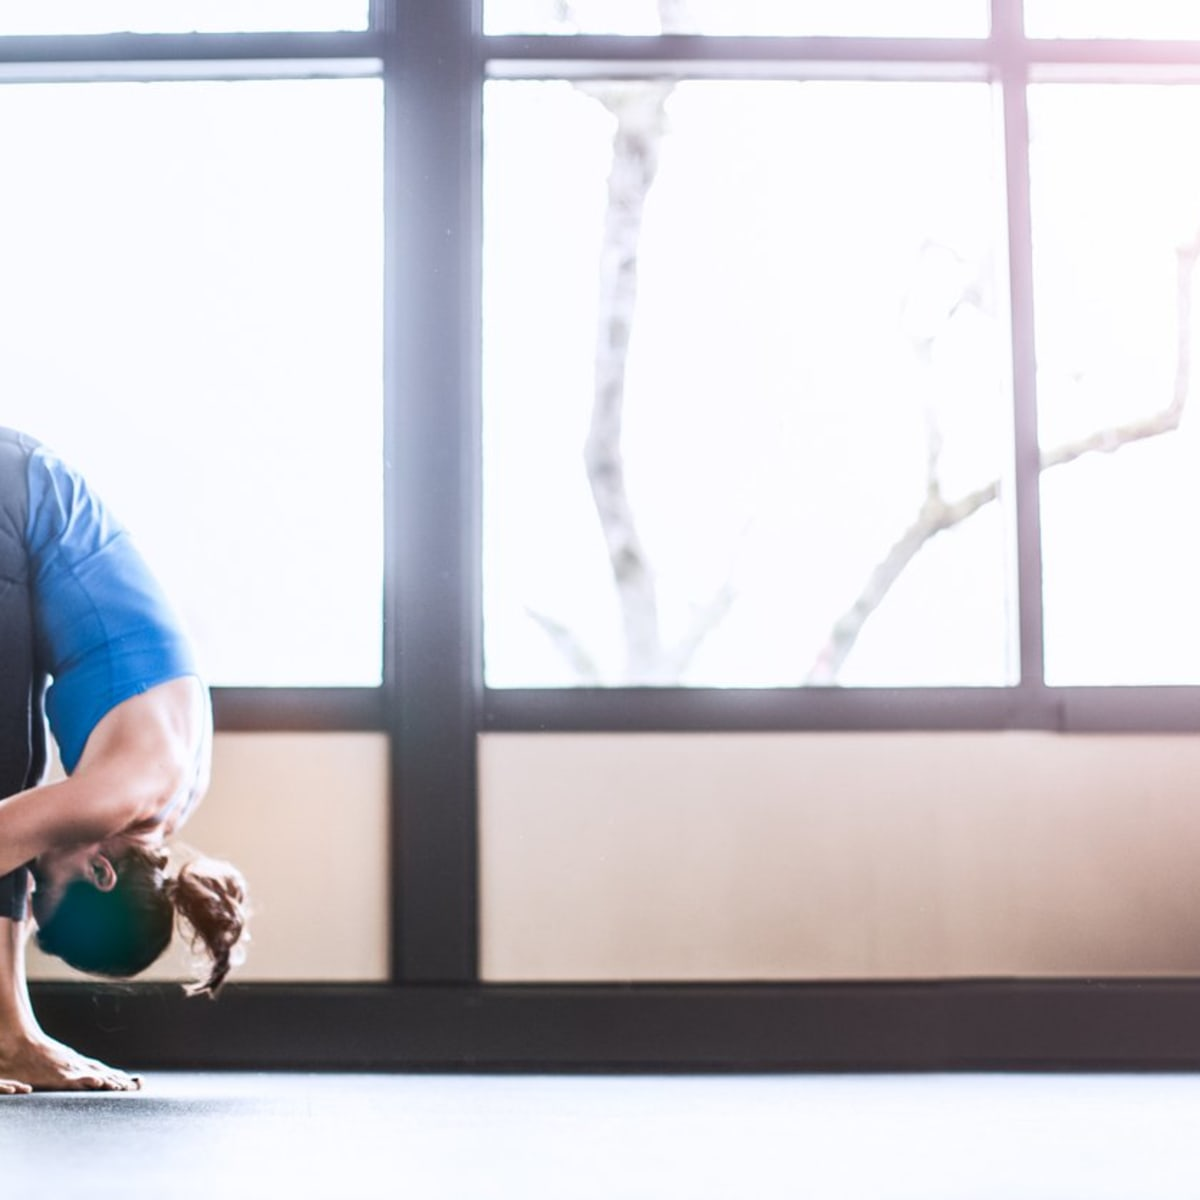 41 Yoga Poses That Relieve Period Cramps, According to the Experts